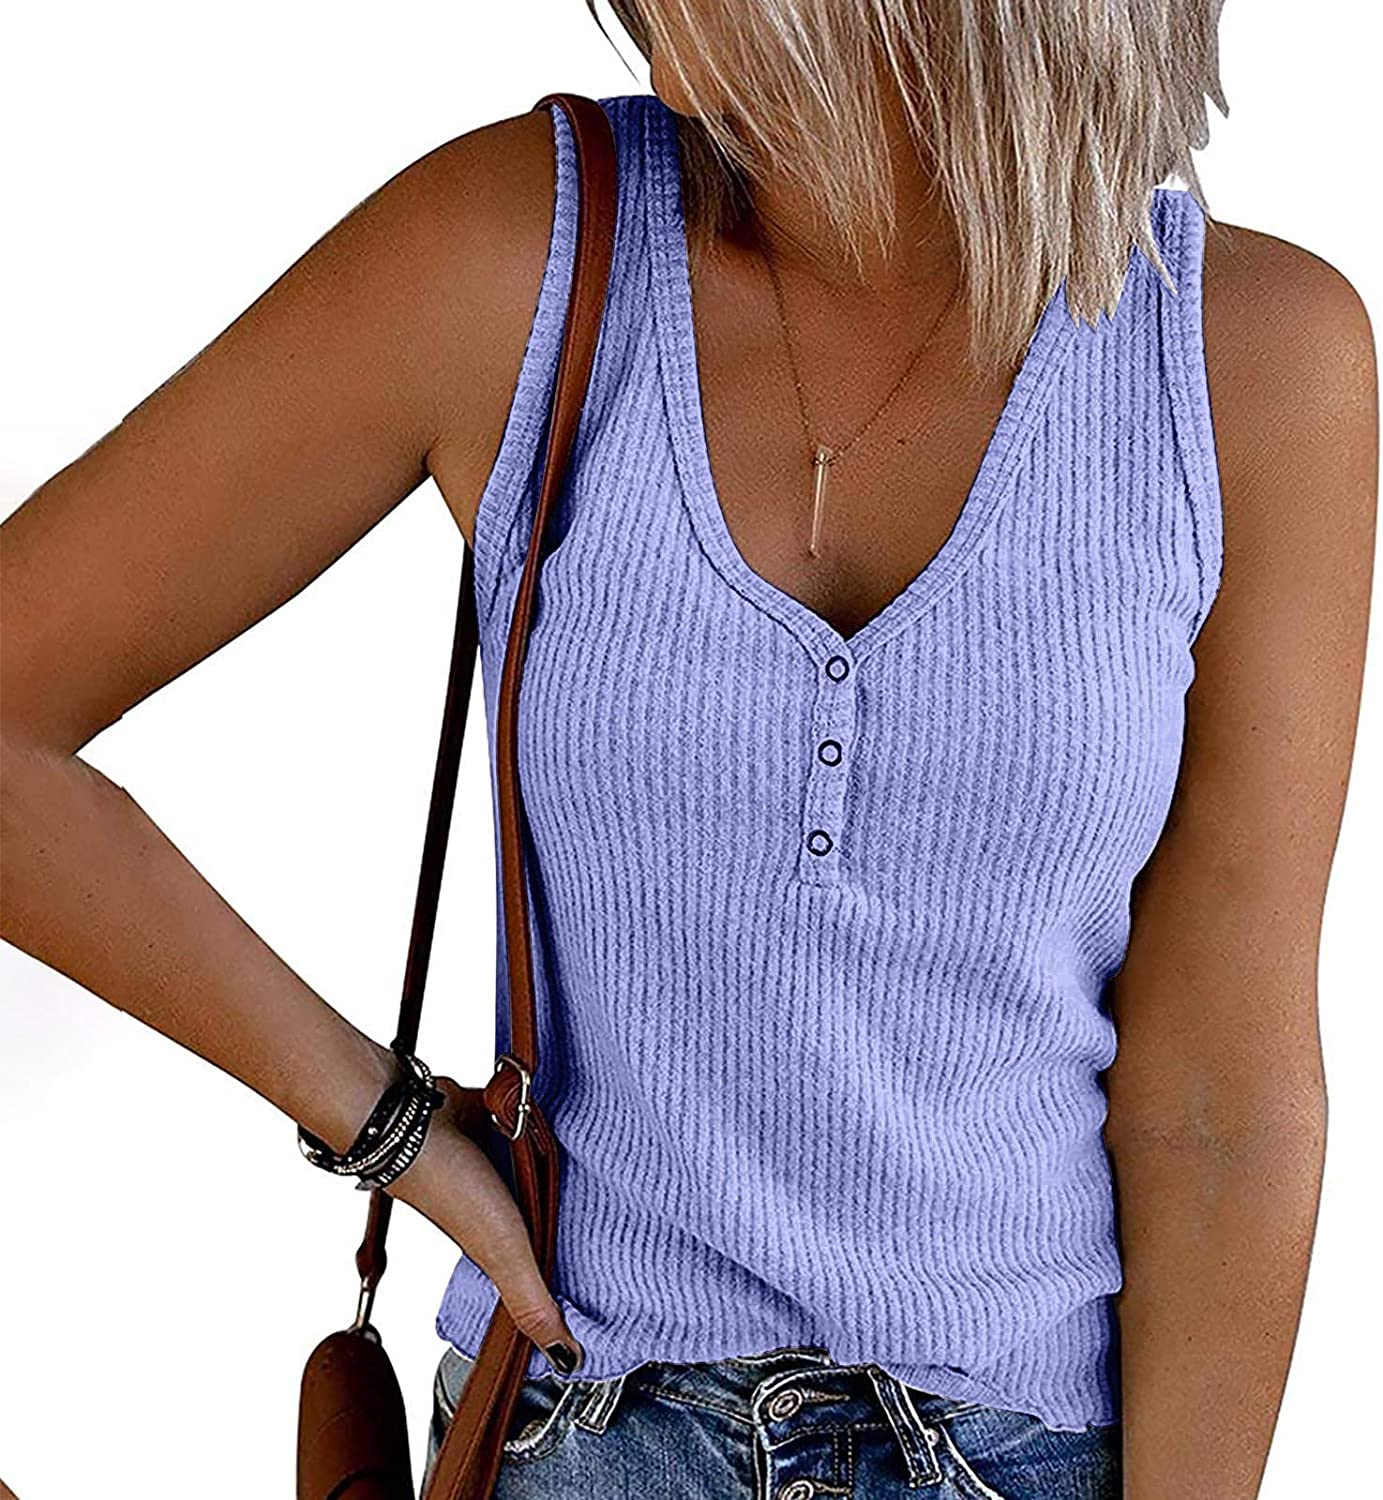 Gerichy Tank Tops for Women, Womens Casual Summer Sleeveless Plus Size Loose Tank Tops Tees Shirts Blouses Tunics